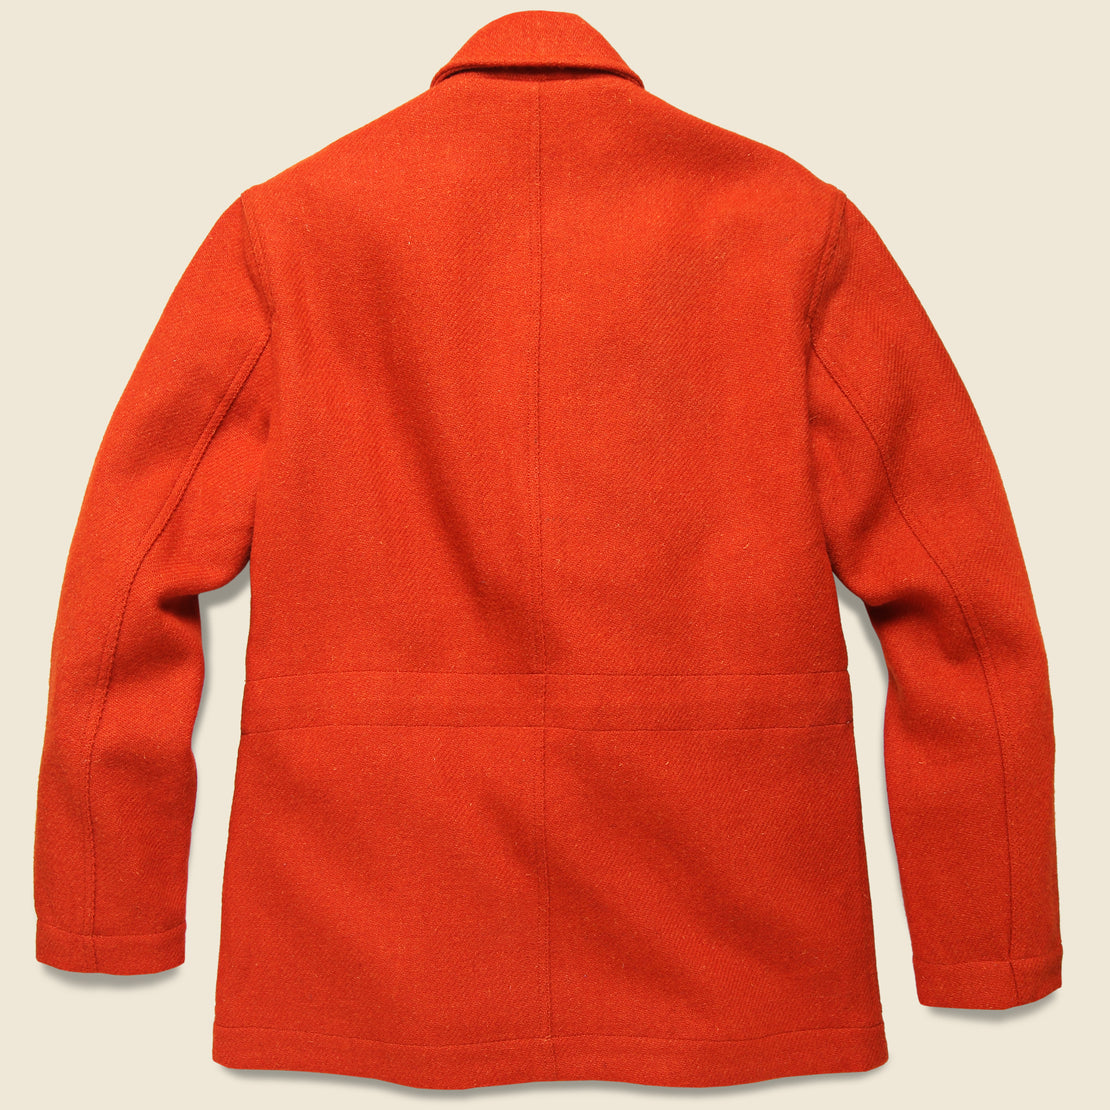 Norfolk Tweed Bakers Jacket - Orange